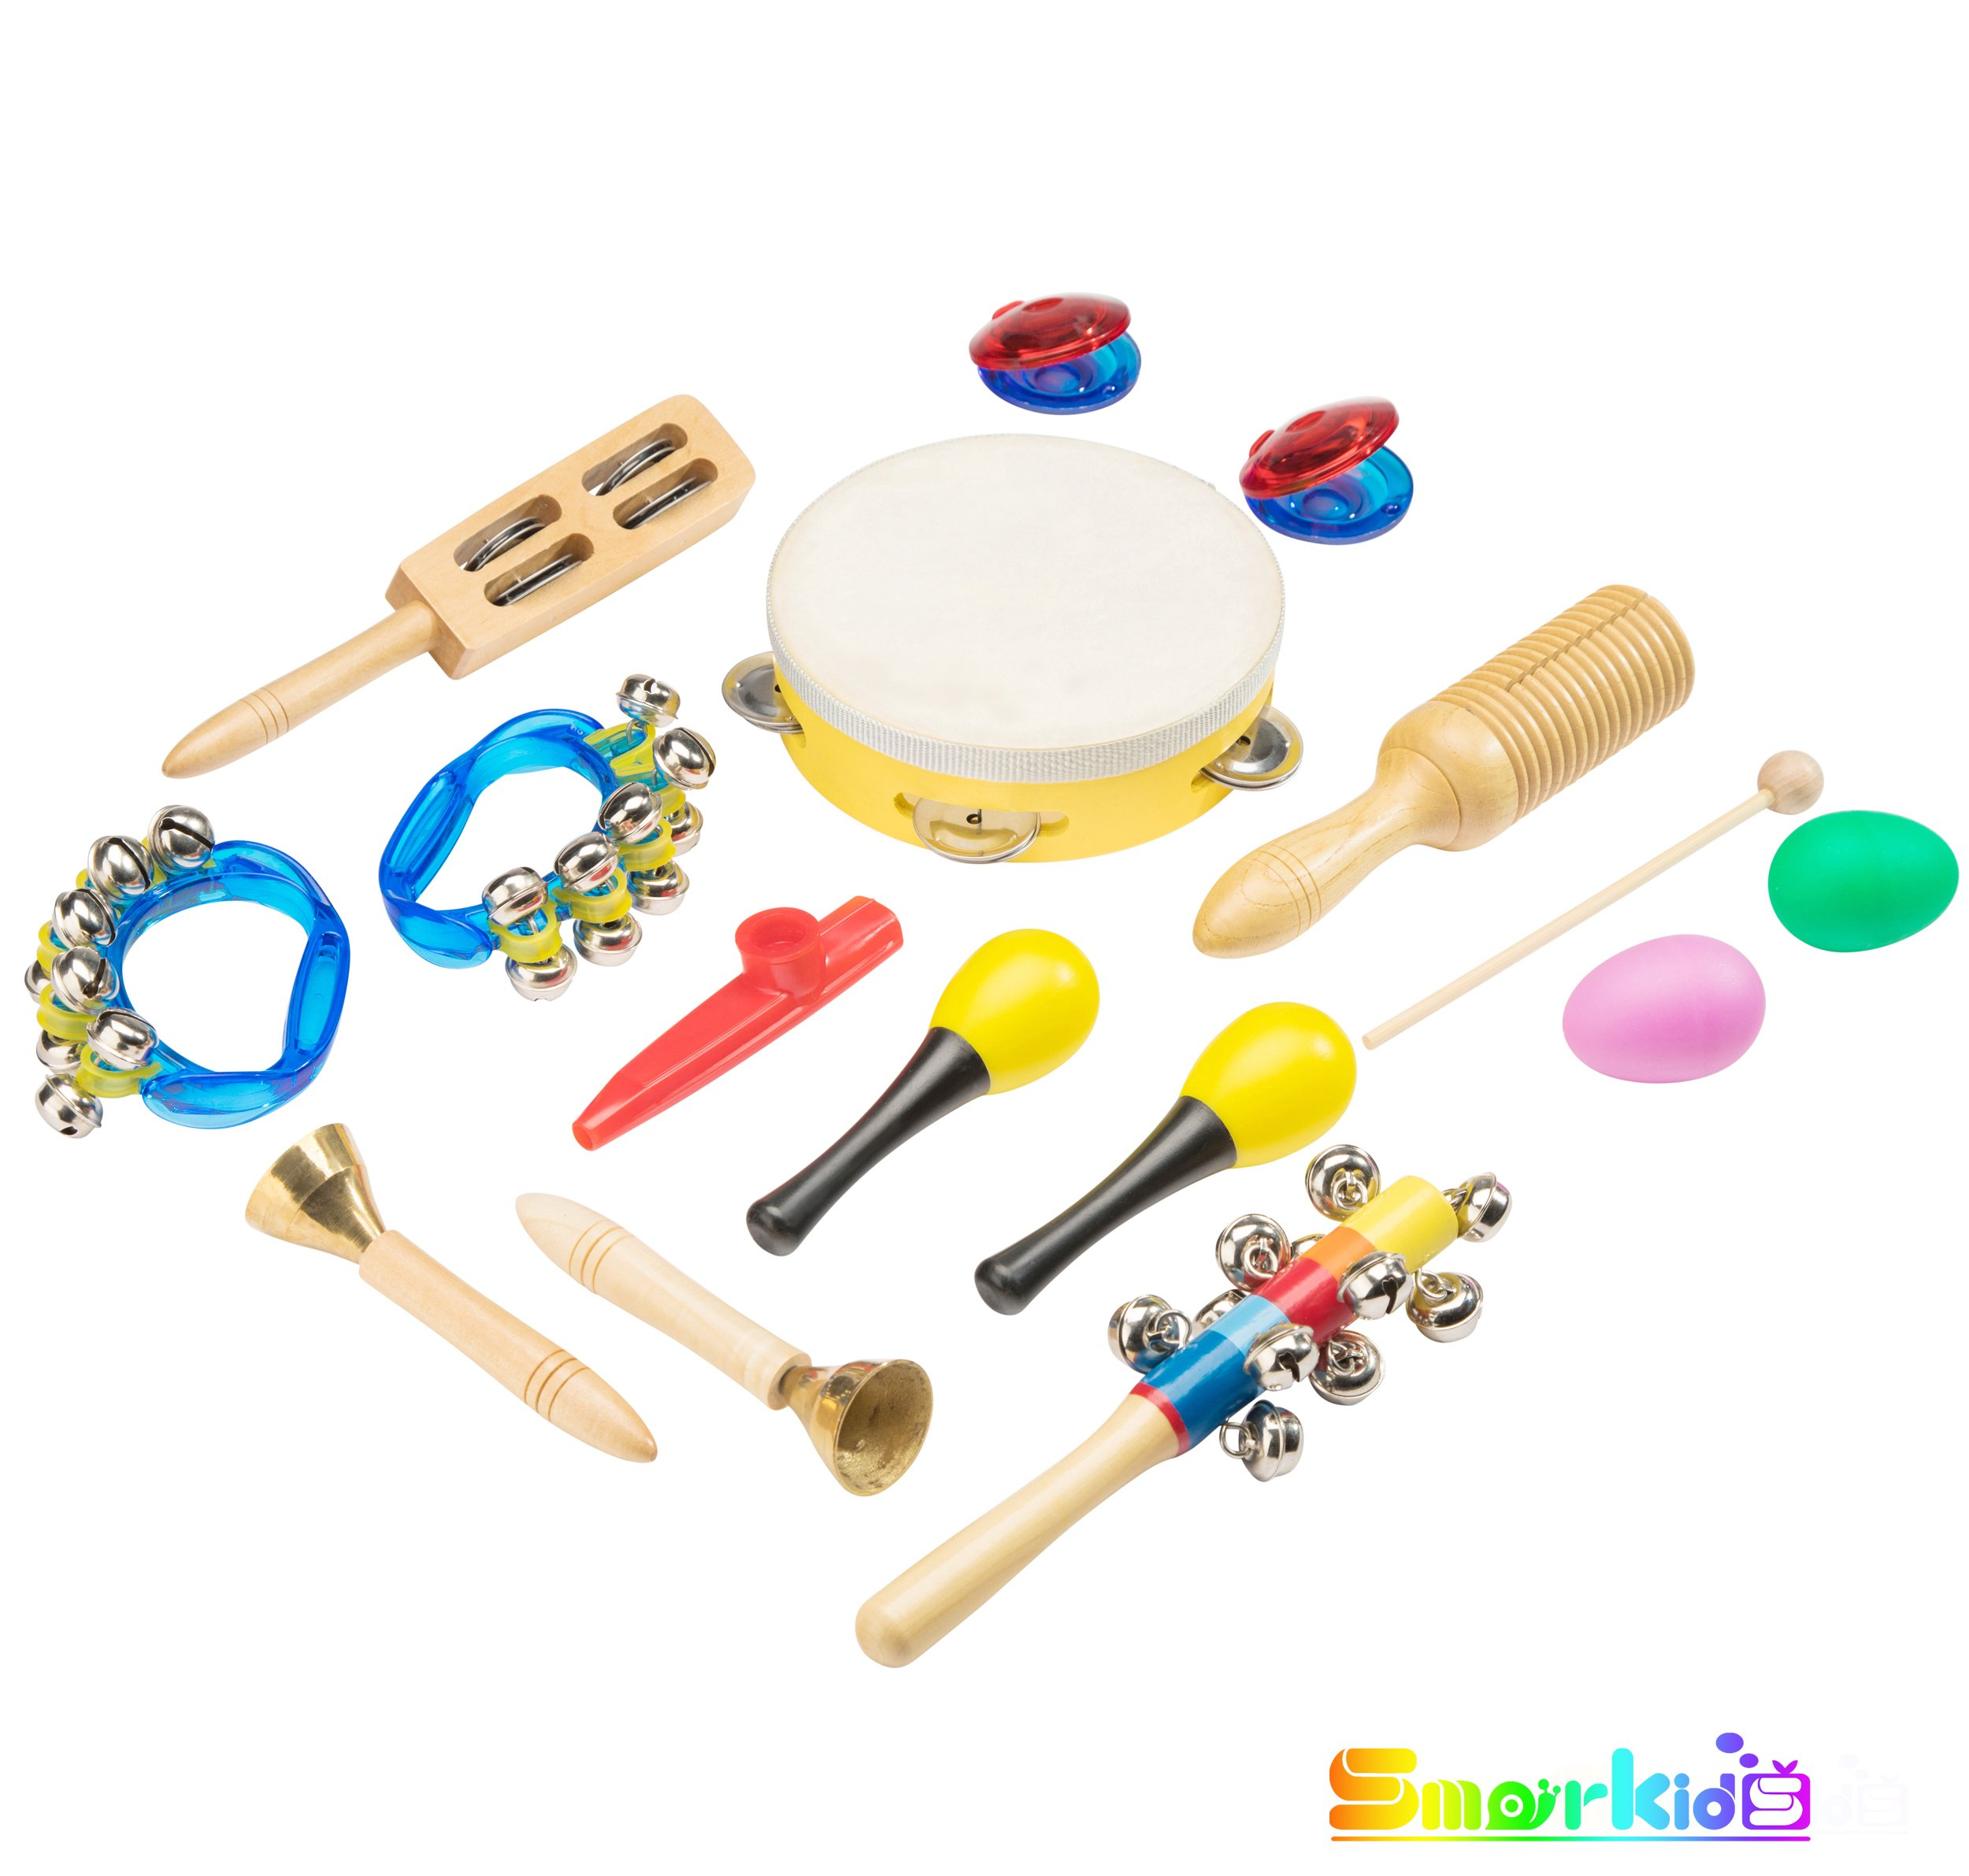 Smarkids Musical Instruments Toddler Musical Toys 15 pcs Wooden Baby Toys for Kids Preschool Educational Early Learning Offworld Percussion Set Rattle for Boys and Girls with Toy Storage Backpack